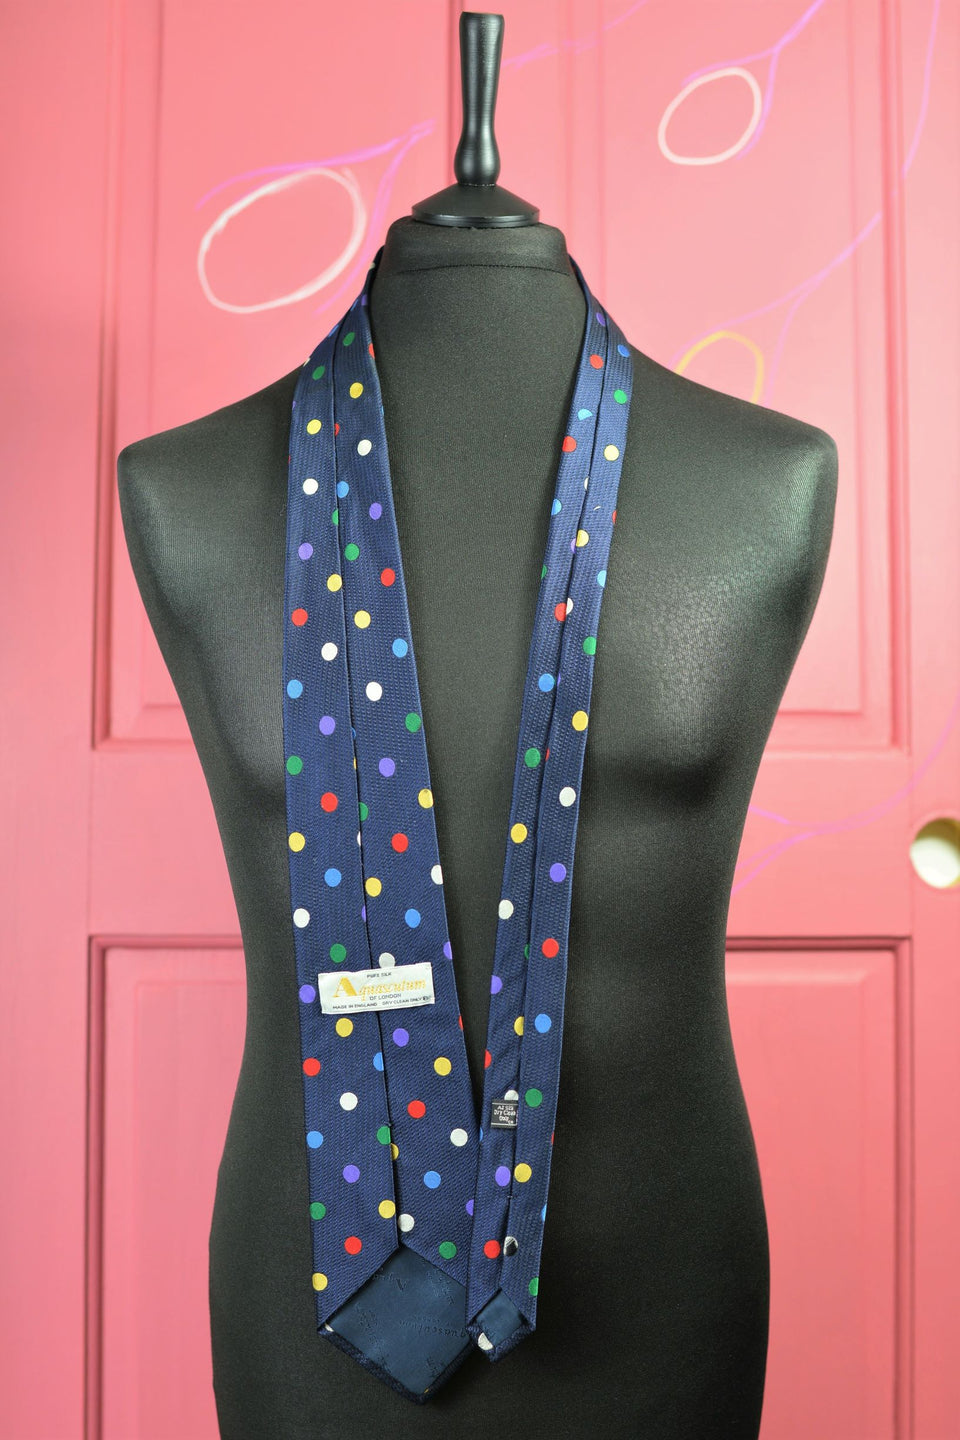 AQUASCUTUM Men's Pure Silk Multicolour Polka Dot Tie. Pre-loved.